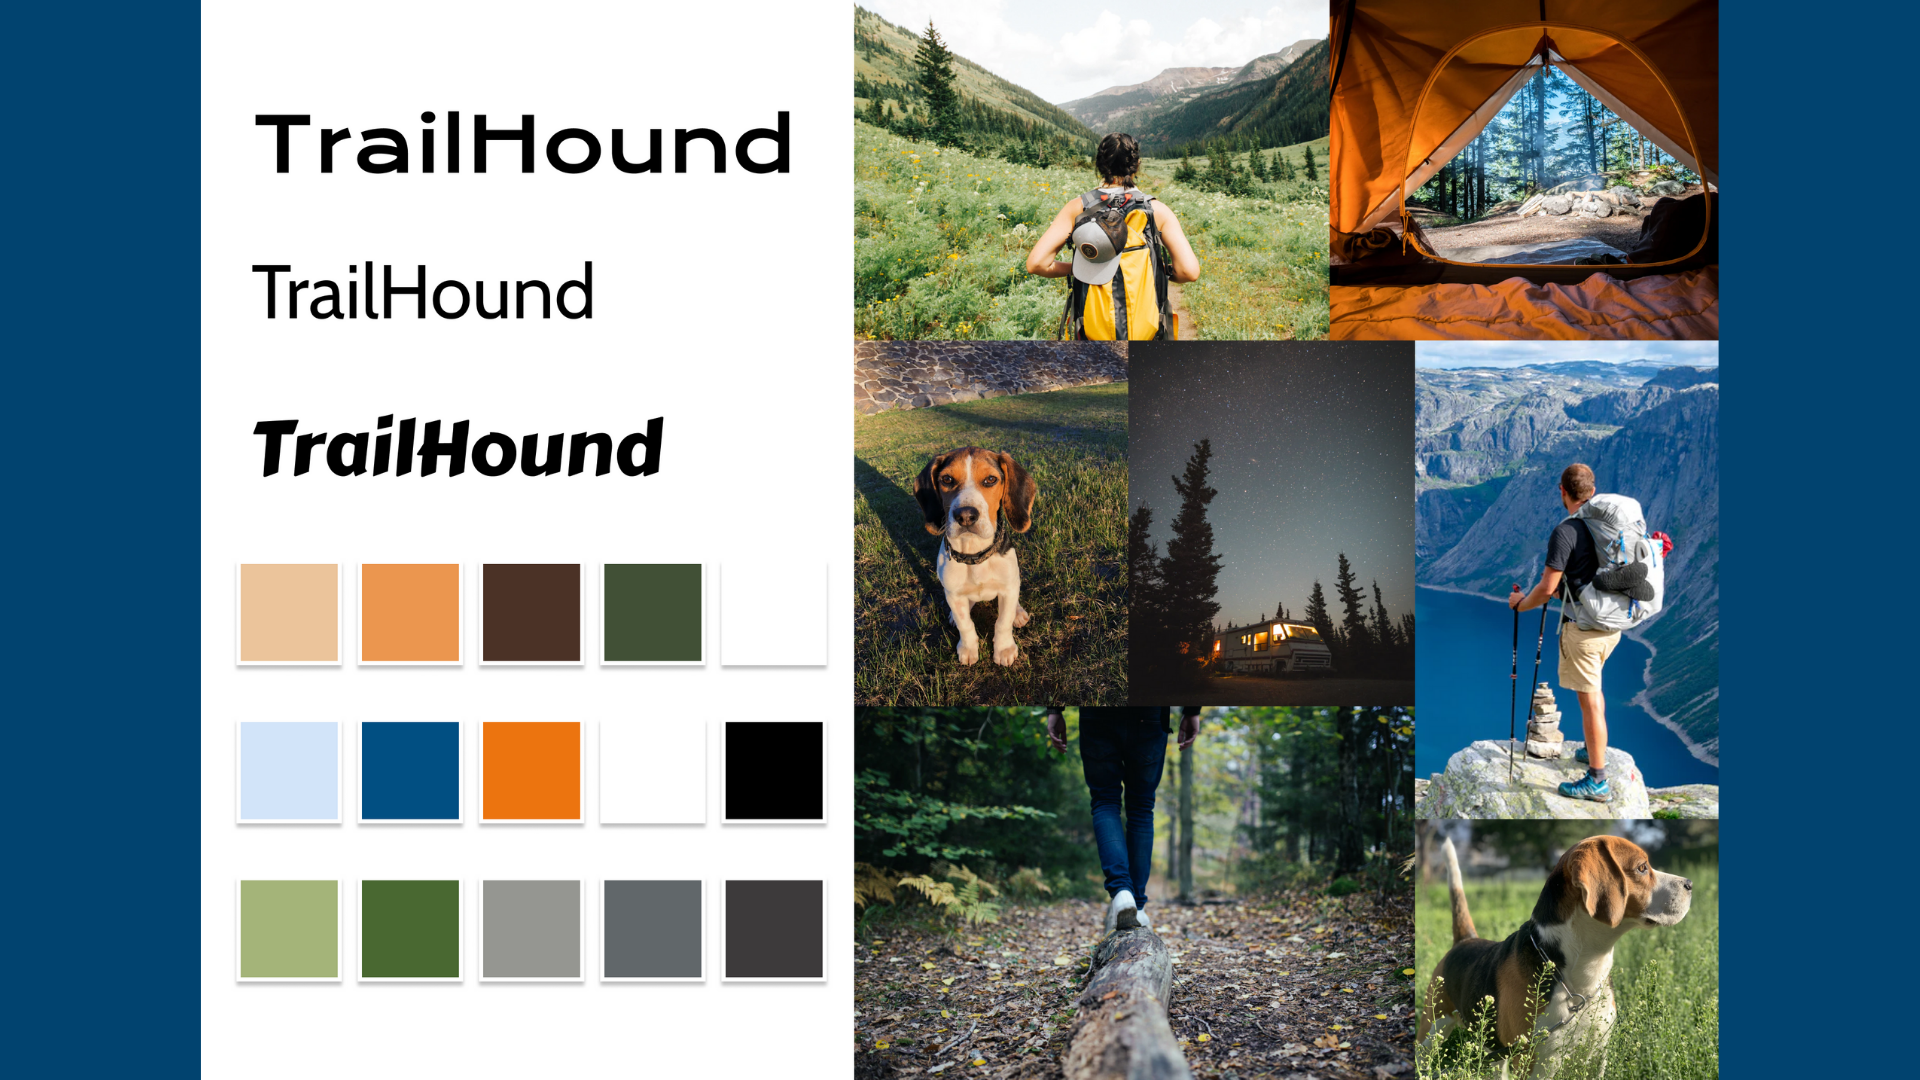 Moodboard showing the name TrailHound in three different fonts. There are also a few colors sampled from the collage of photos next to it. These photos include; a person standing in a grassy valley, a snowy forest through an open tent door, a beagle sitting, an RV parked in a pine forest under a starry sky, a person on the edge of a cliff overlooking a lake, a person walking across a log and a beagle standing in some tall grass.